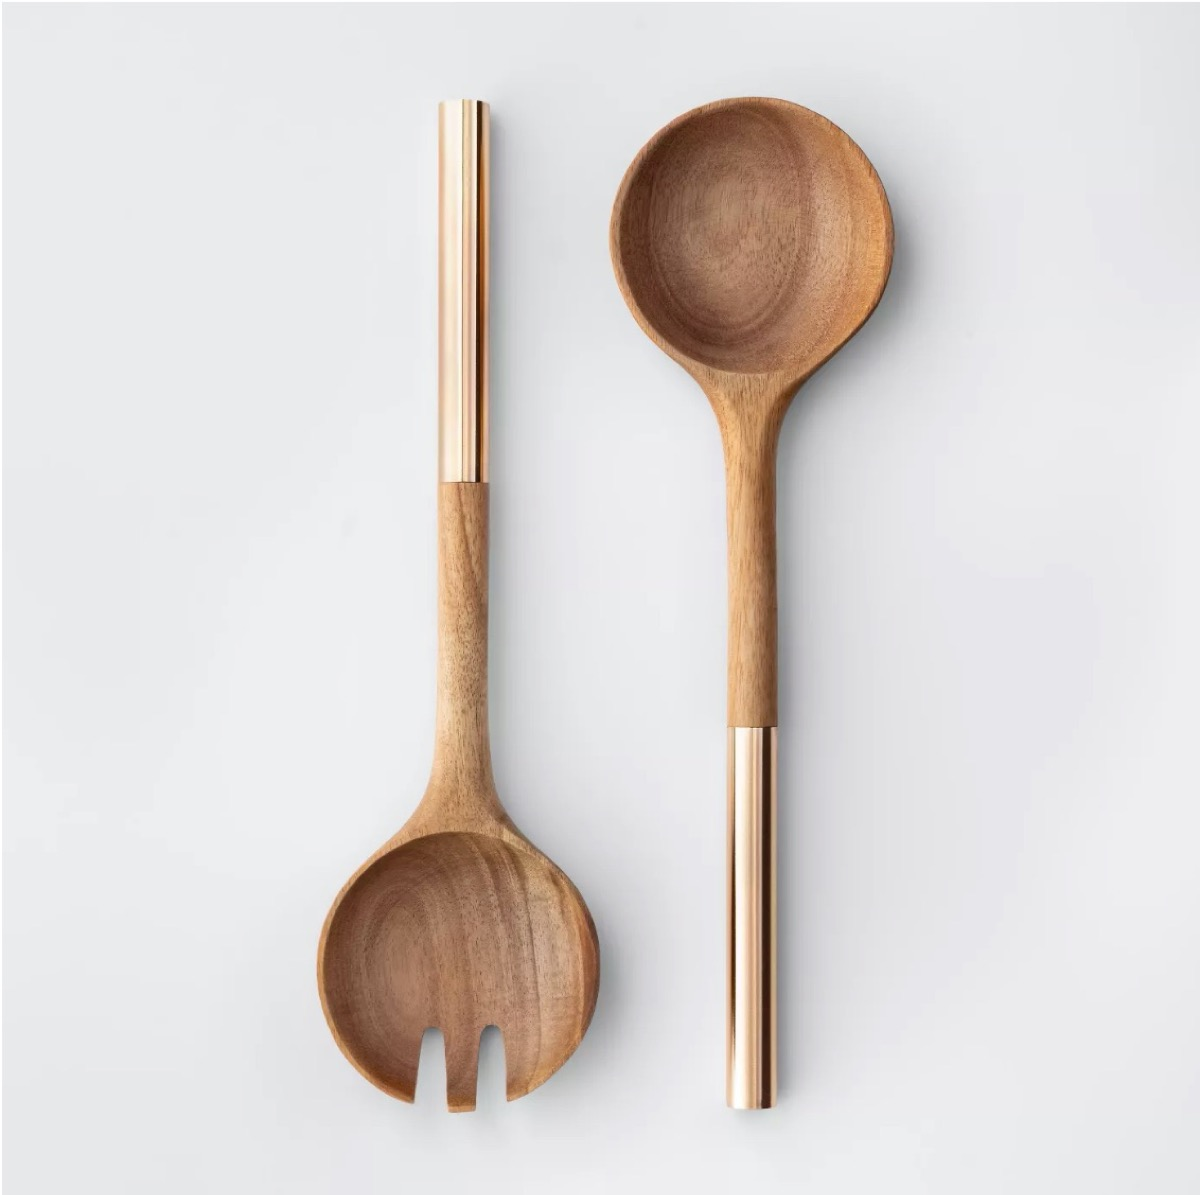 wooden salad tongs with gold handles